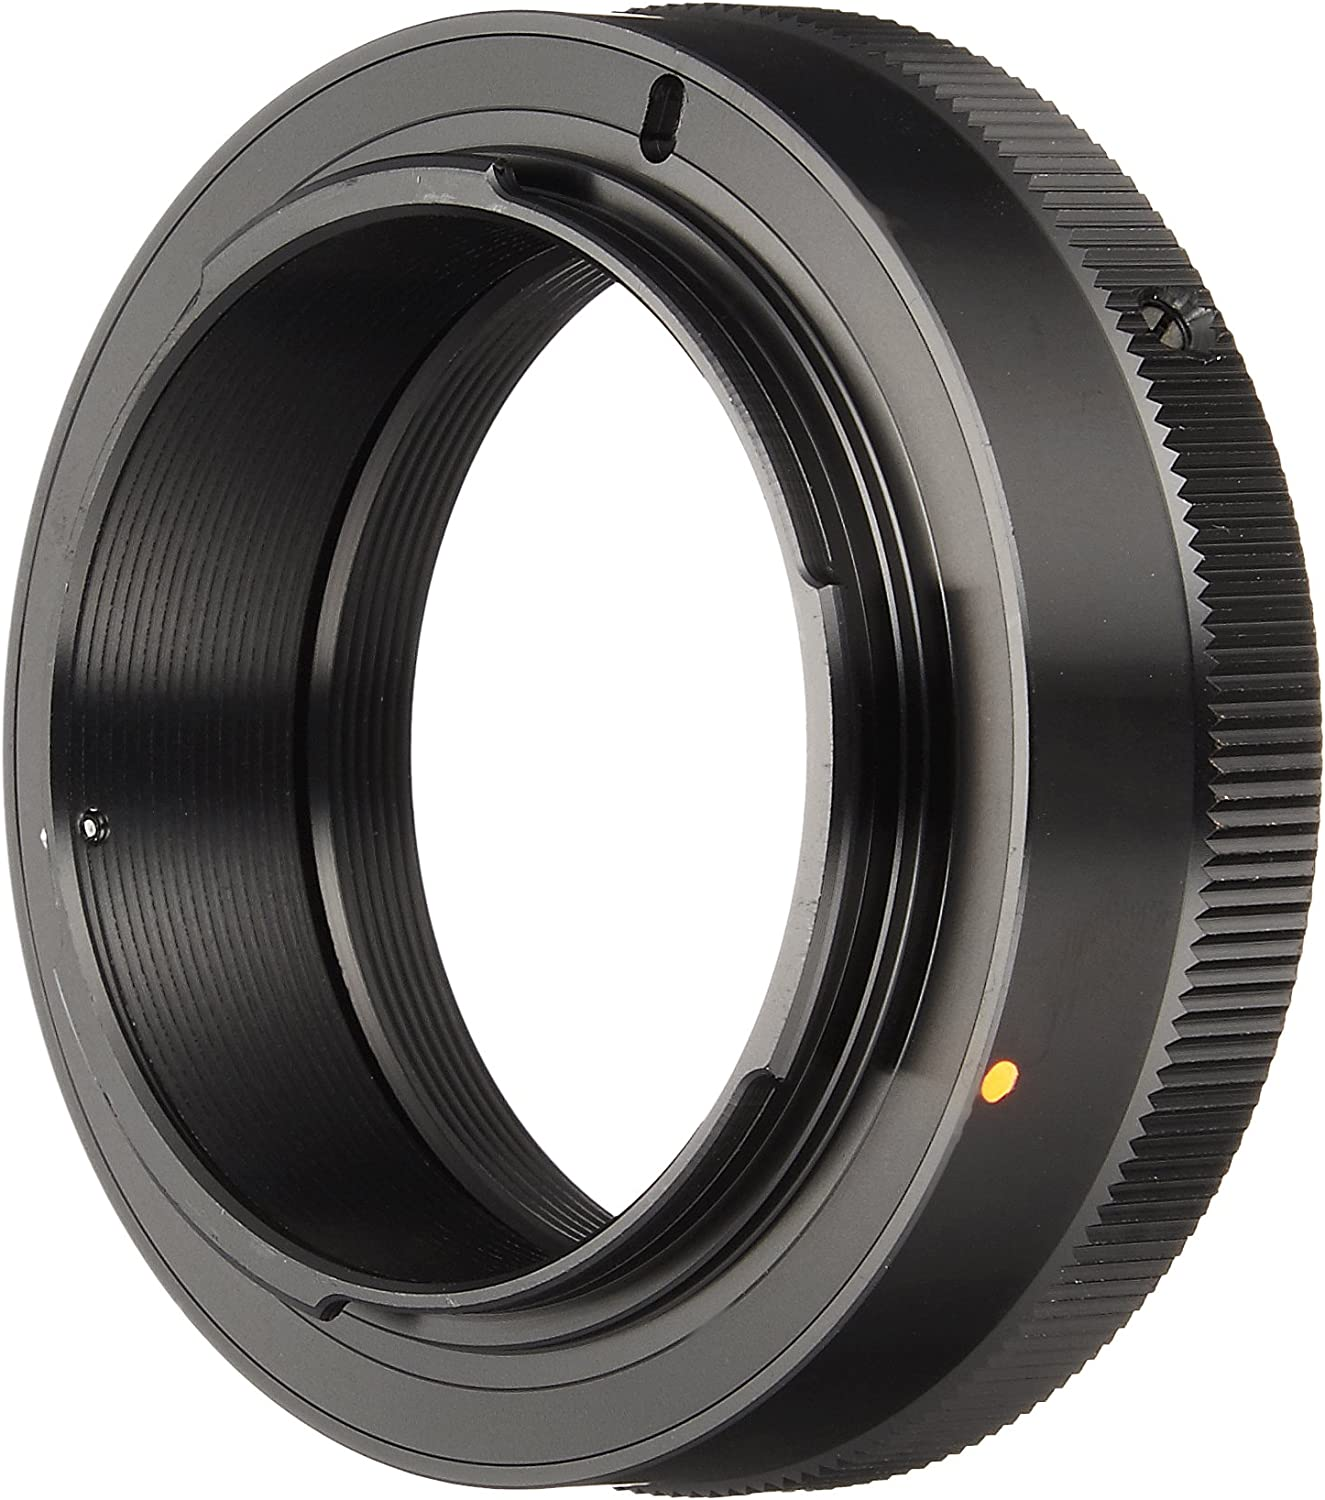 Photographic Accessories Camera Adapter T Ring Four for Thirds 37302-4 Field Scope Vixen Astronomical Telescope N